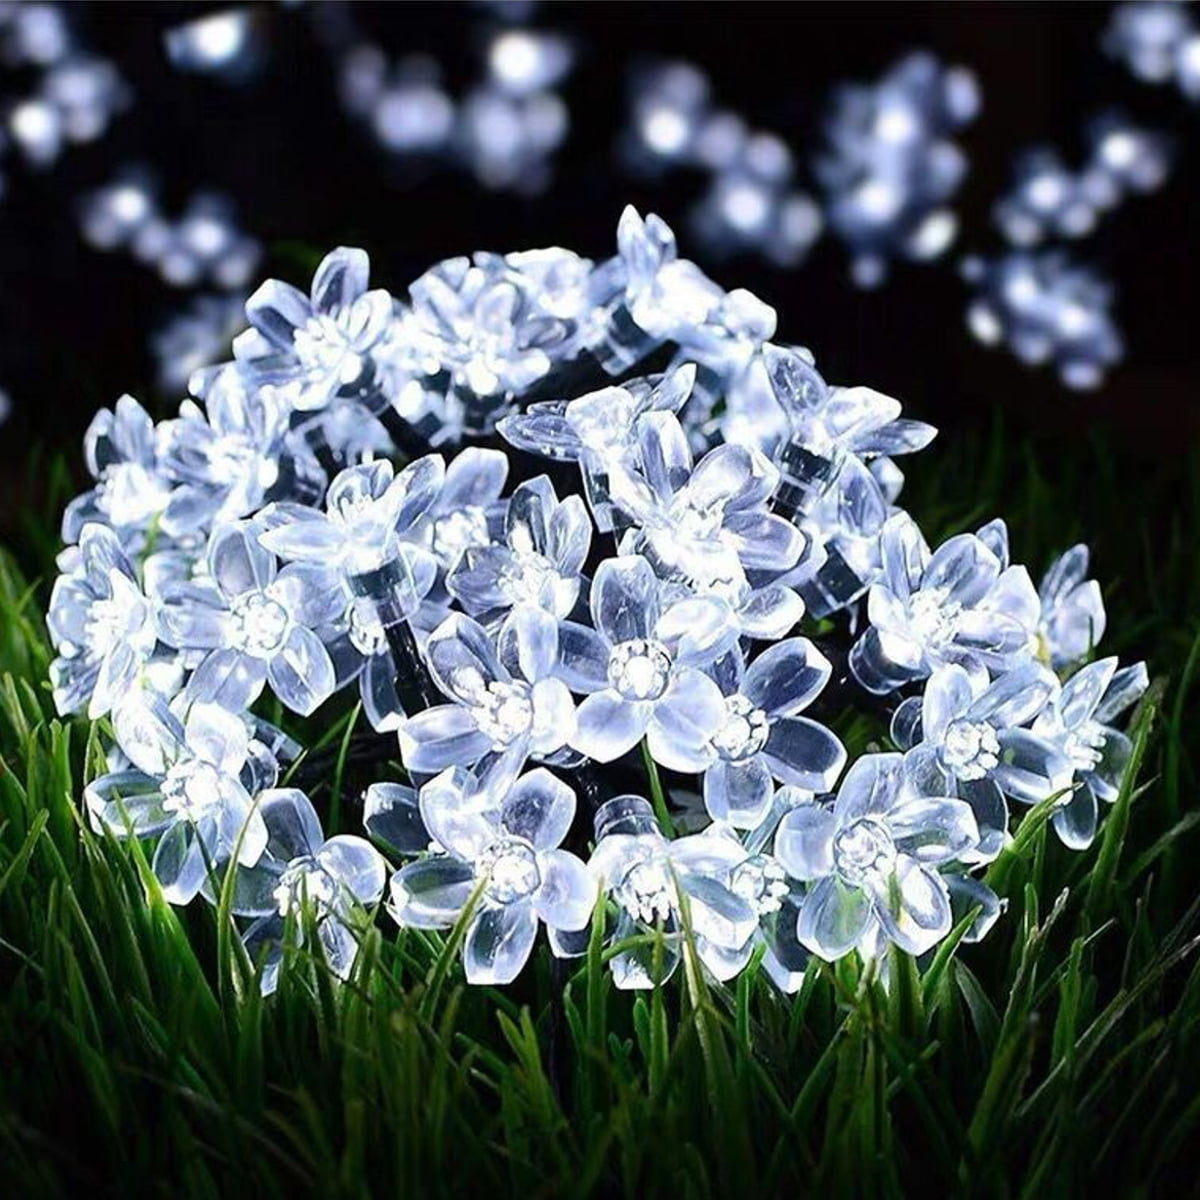 Details about  /100LED Solar Flower Blossom Fairy String Light Party Outdoor Garden Decor IP65